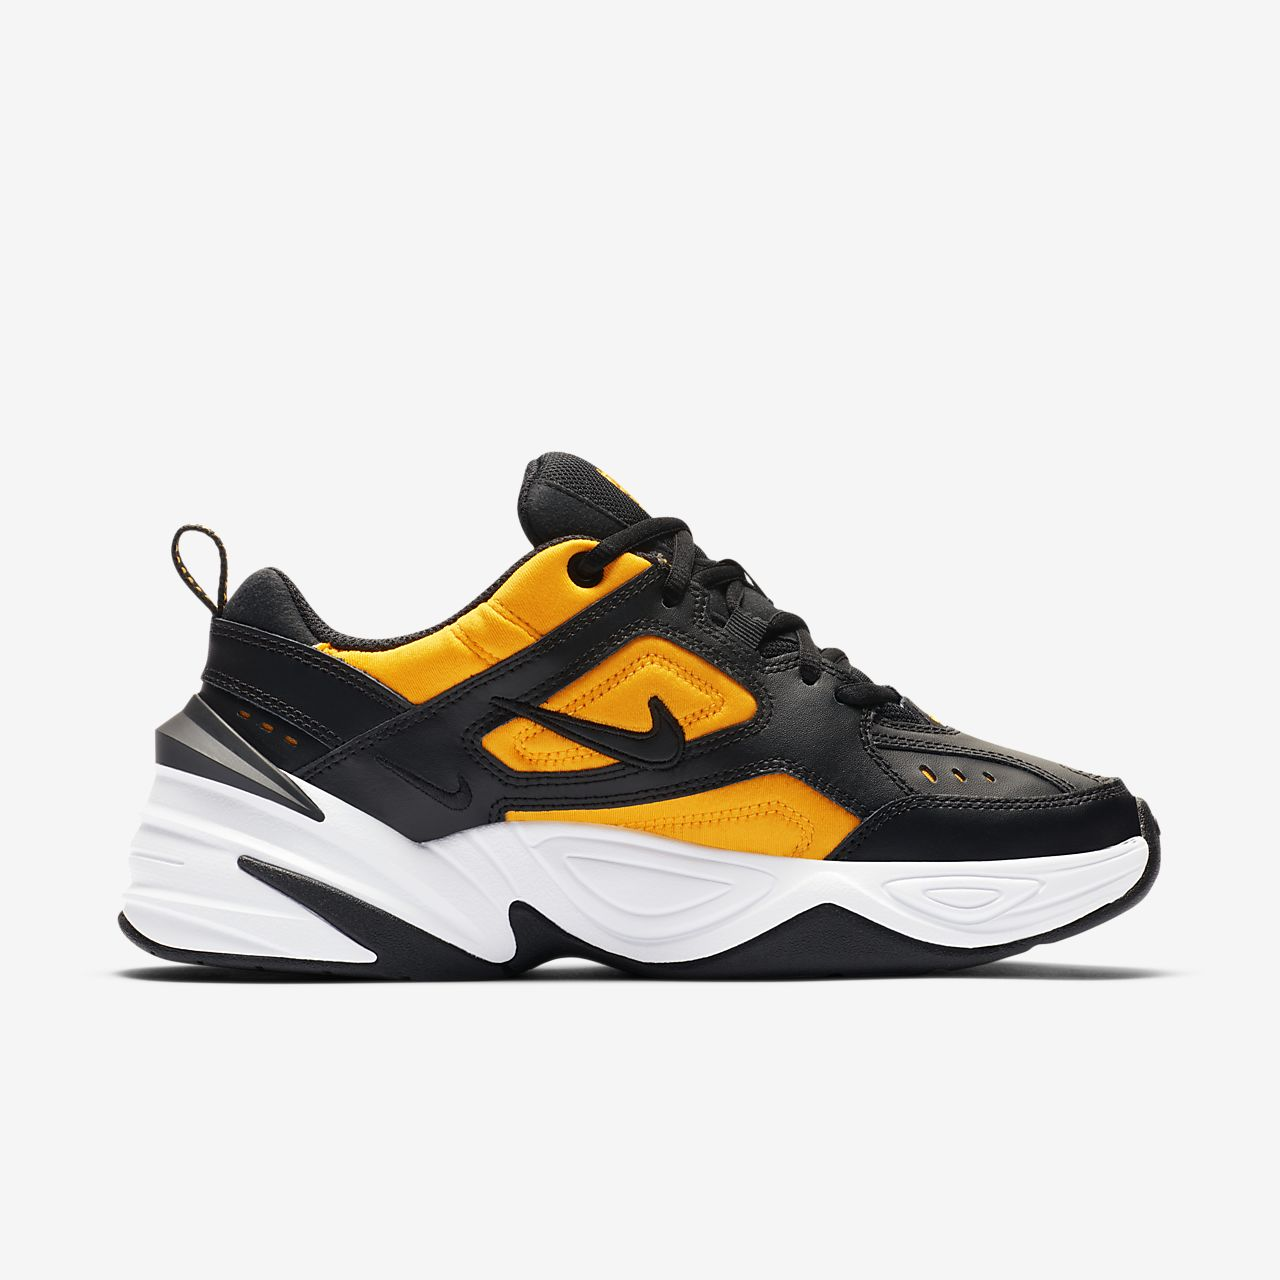 pretty nice 49cf9 f04f6 Low Resolution Chaussure Nike M2K Tekno Chaussure Nike M2K Tekno